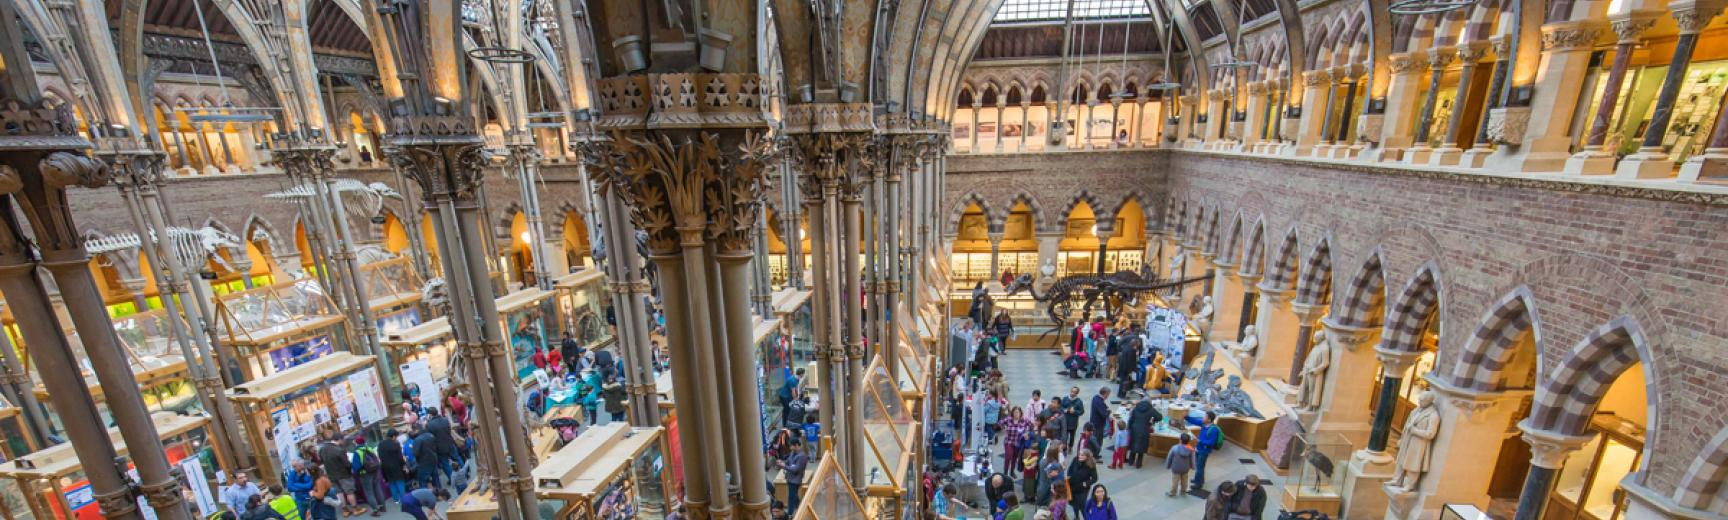 Oxford Museum of Natural History interior